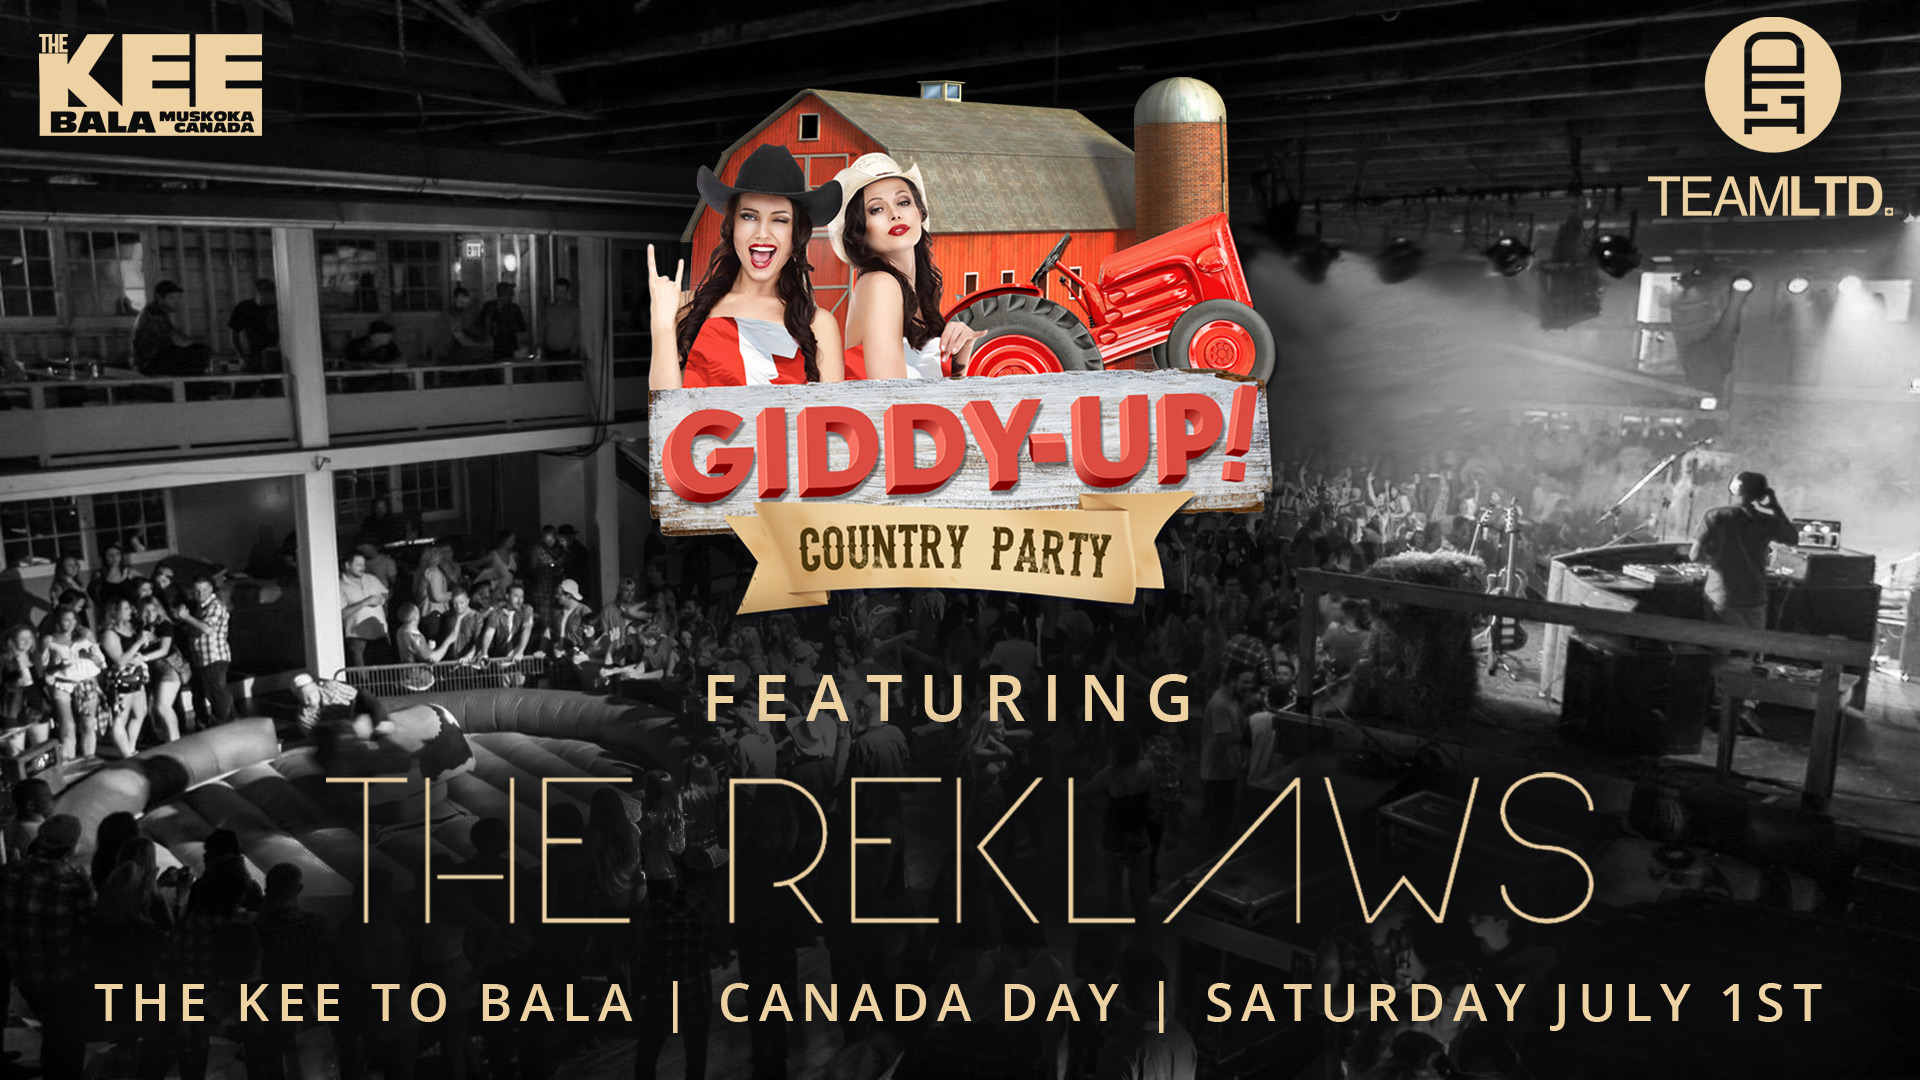 Giddy Up Country Party at The KEE